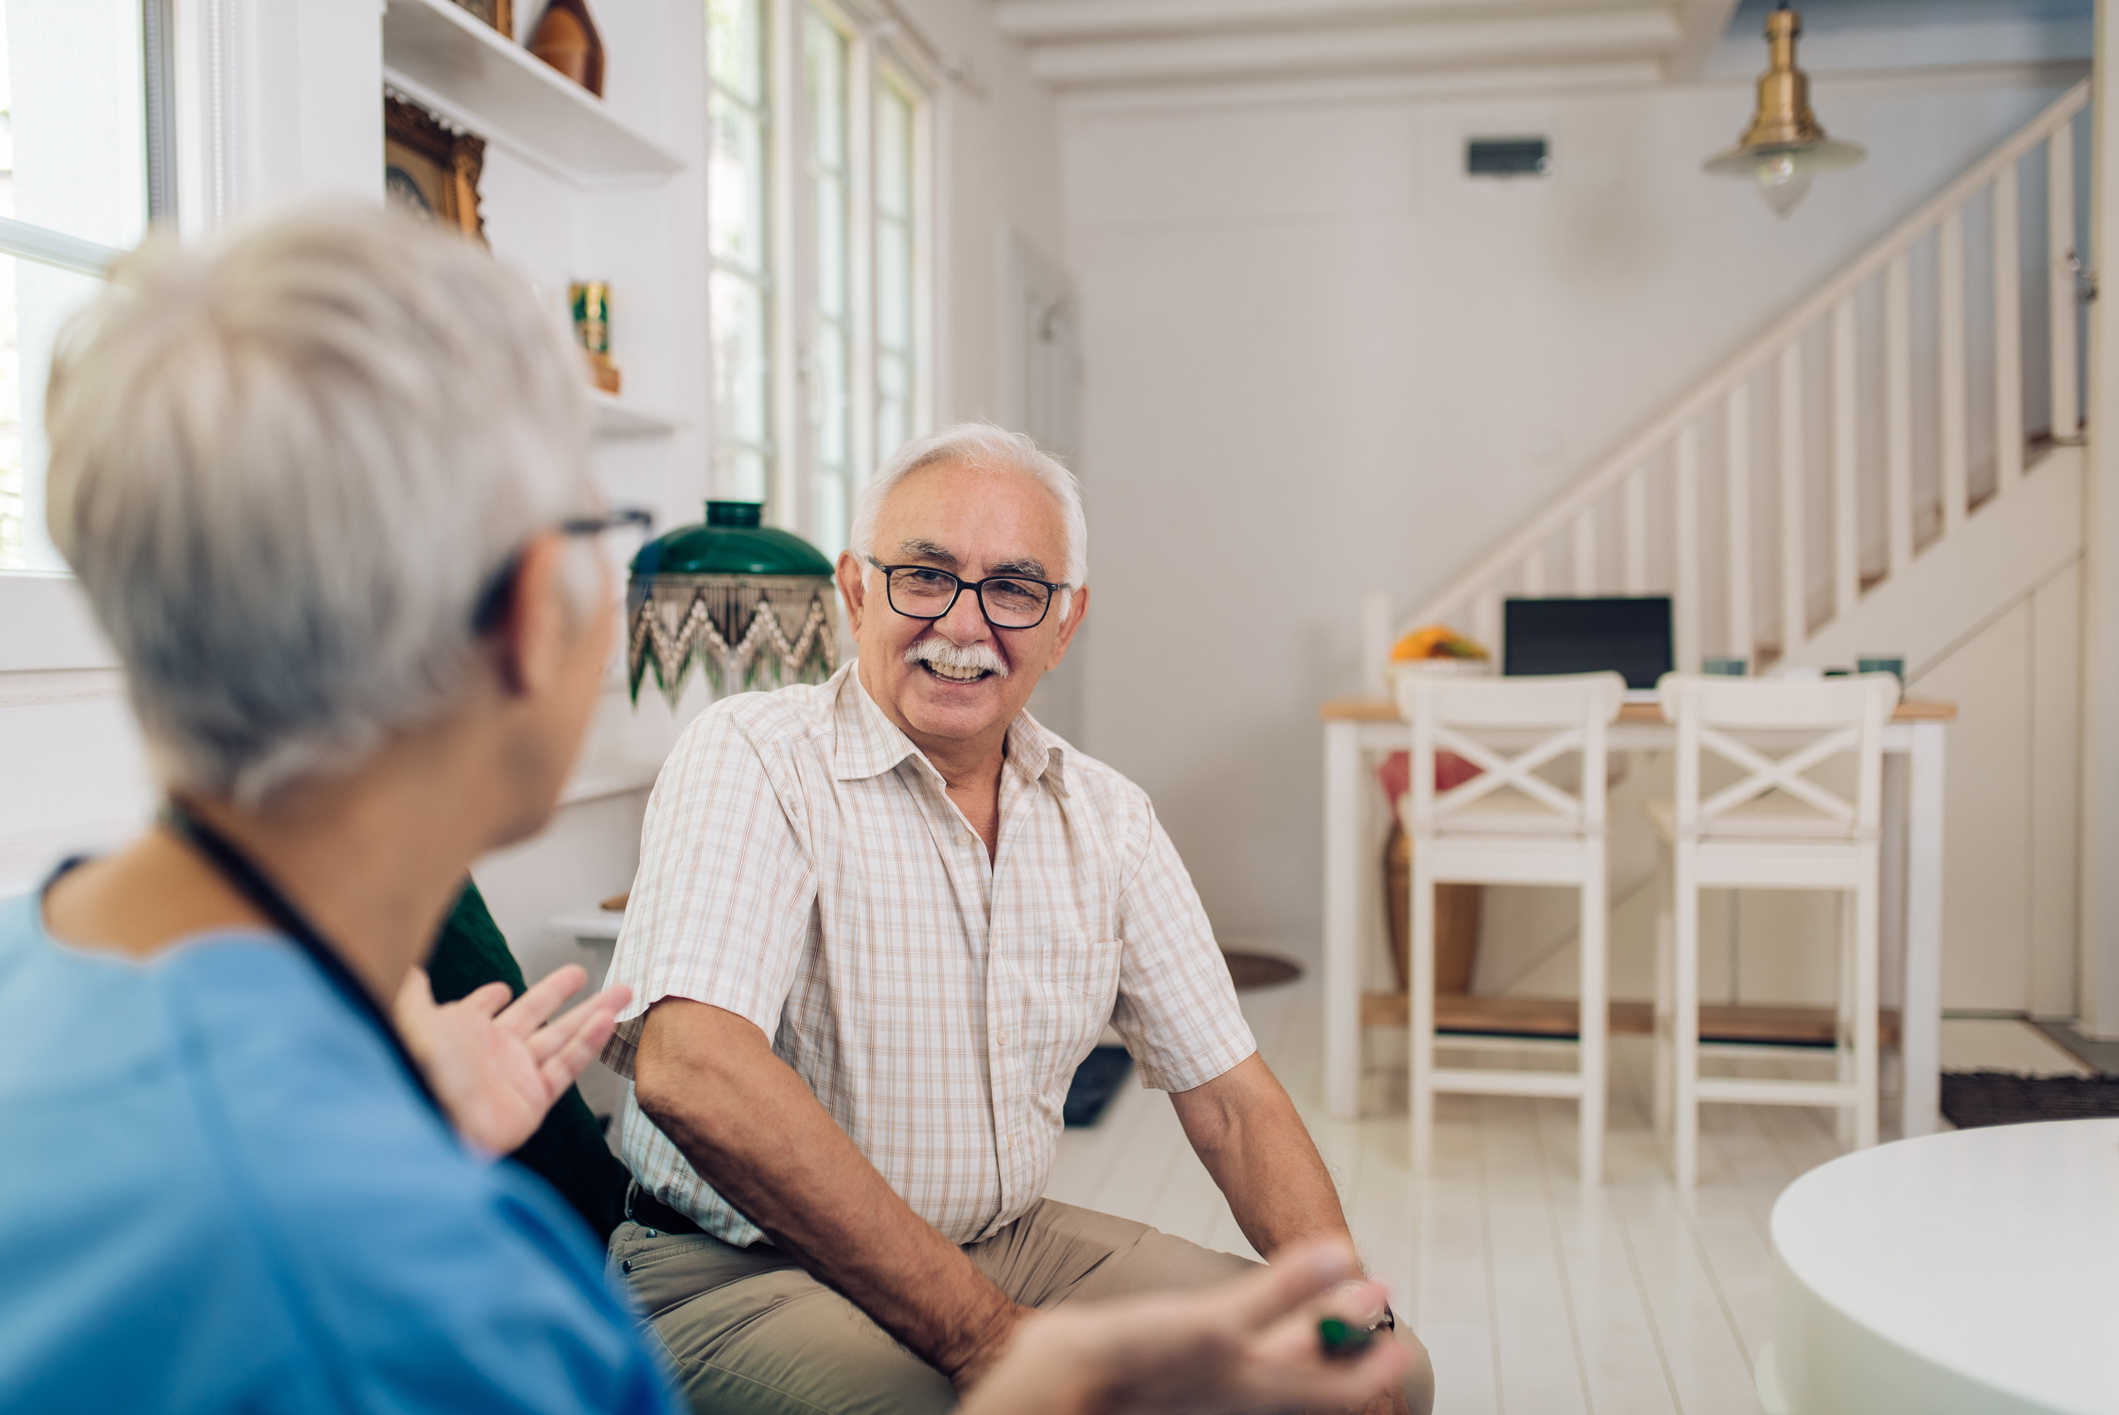 An in-home care consultation provides information on senior care options.